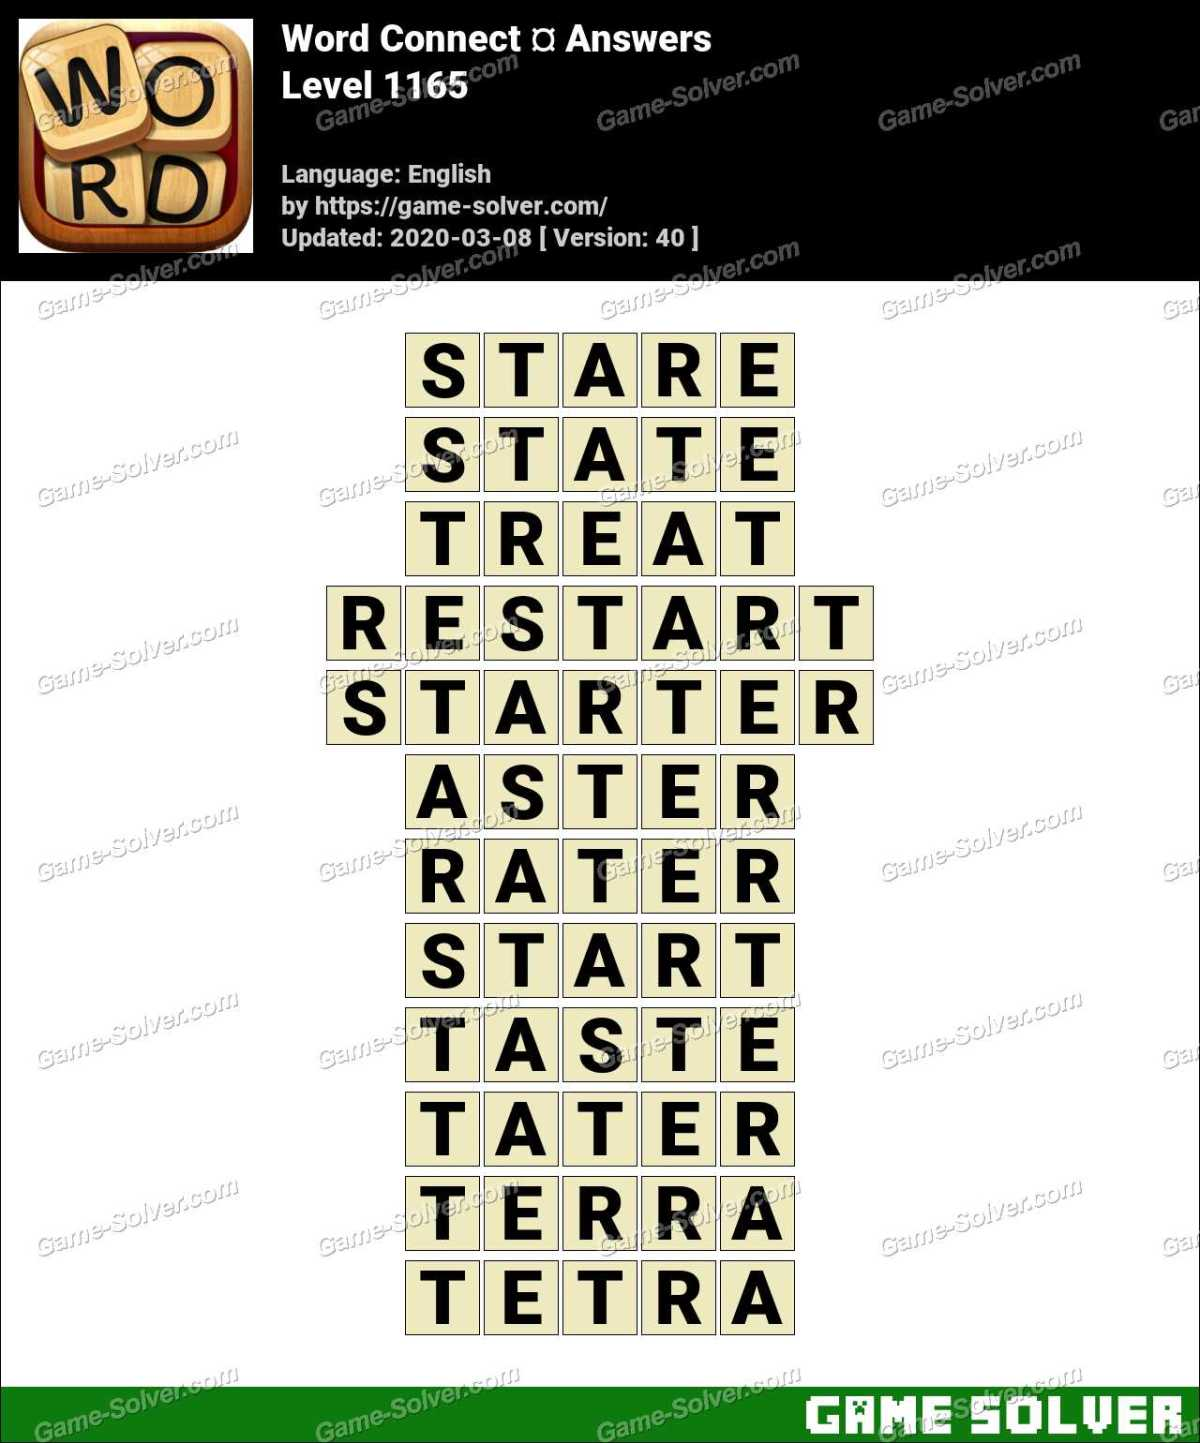 Word Connect Level 1165 Answers